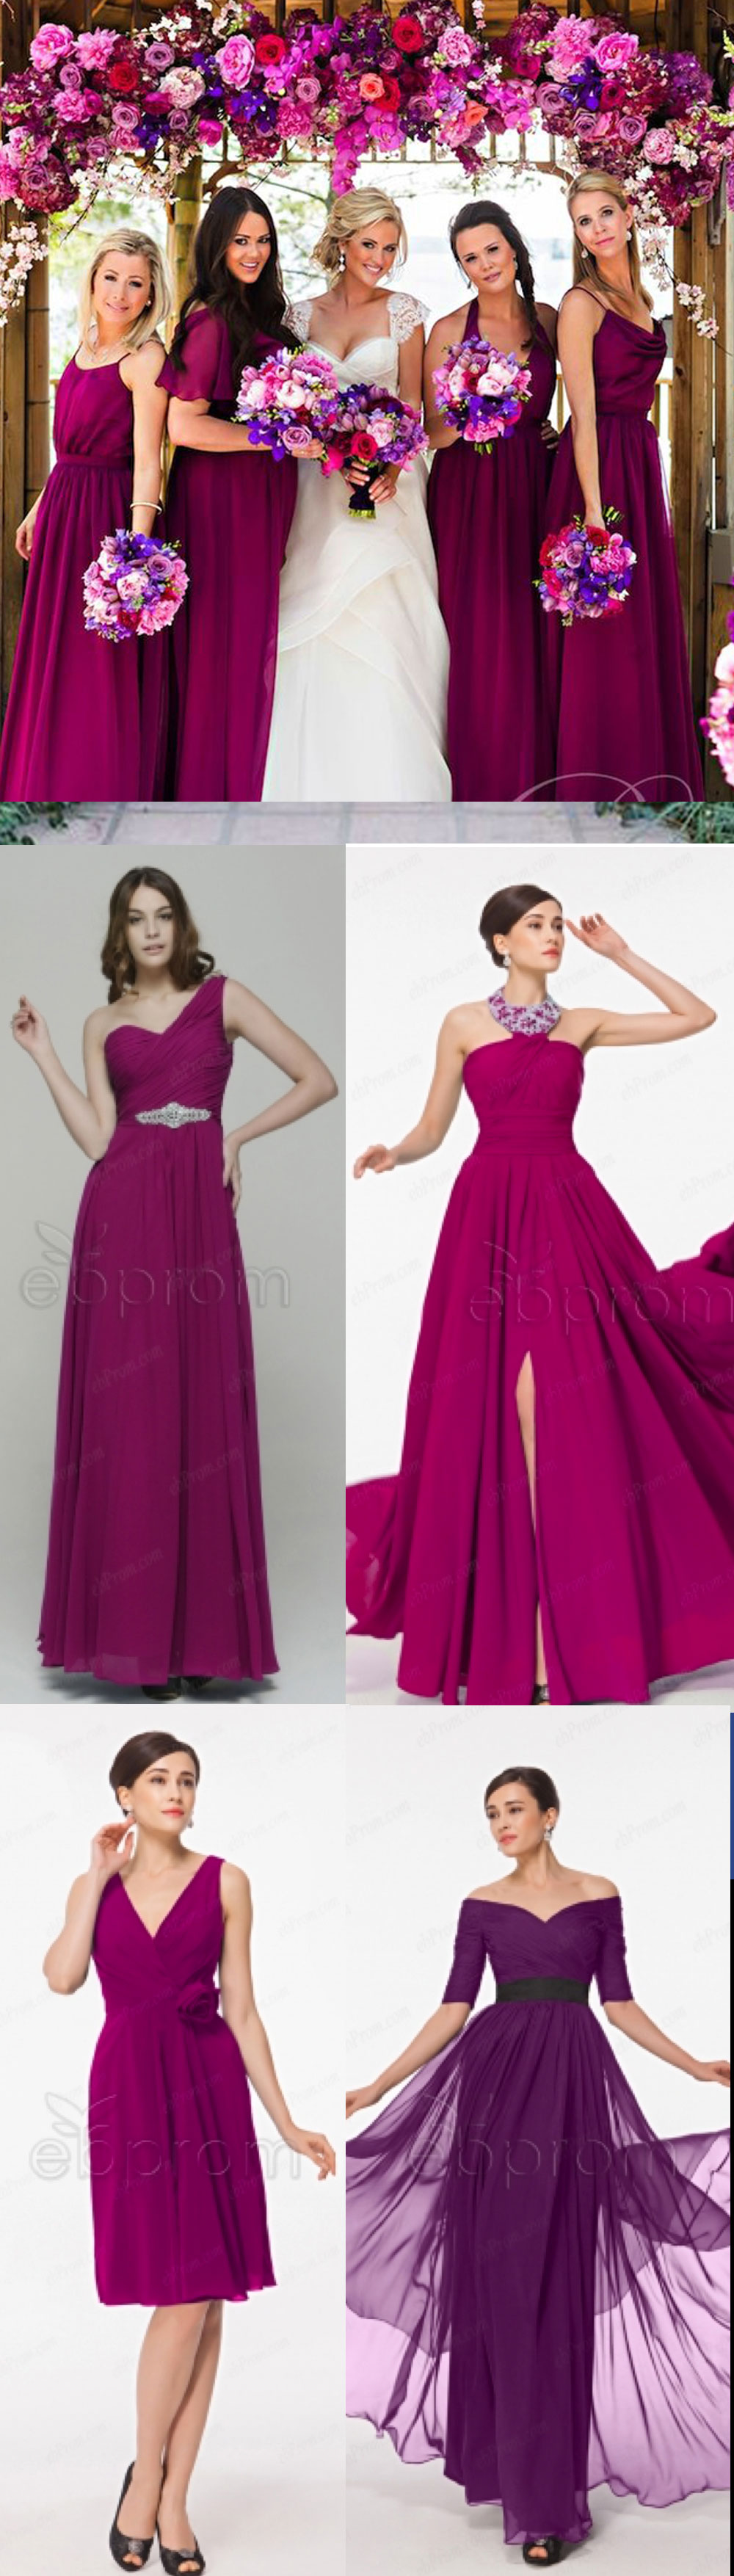 Magenta Colour Theme For A Wedding | Magenta bridesmaid dresses ...